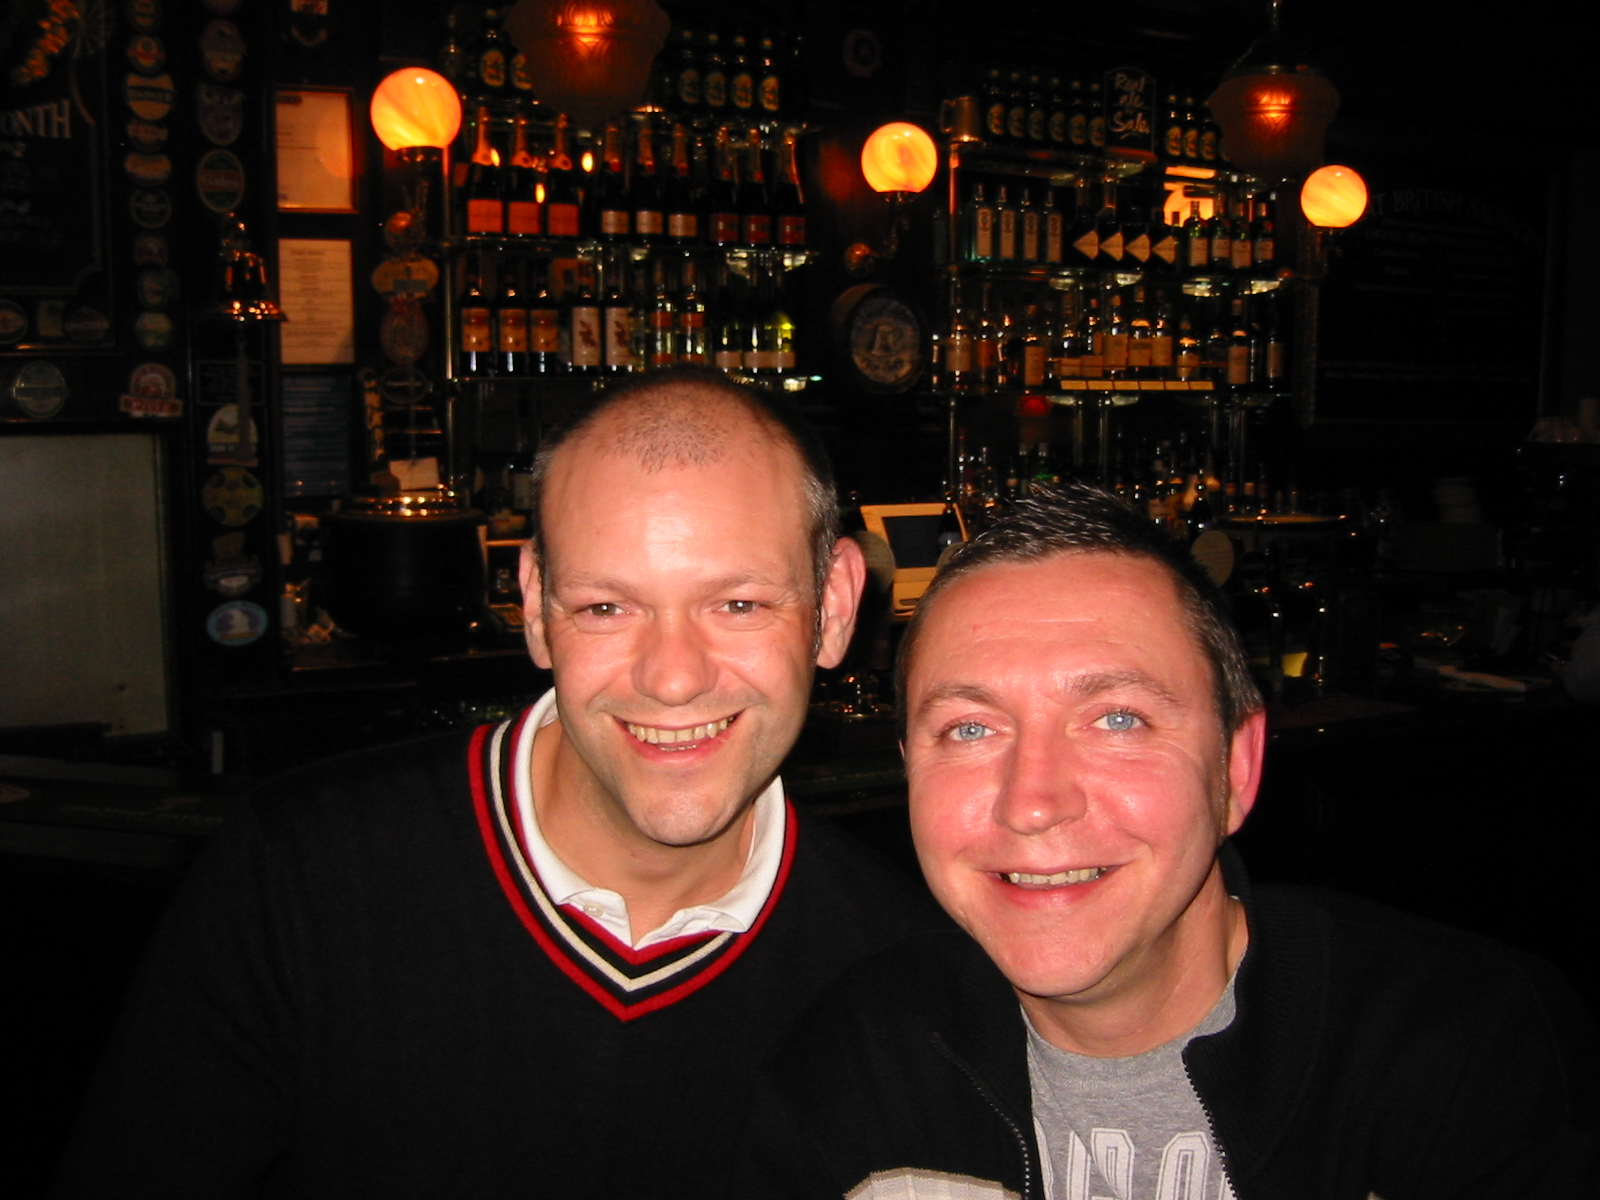 Paul and Geoff